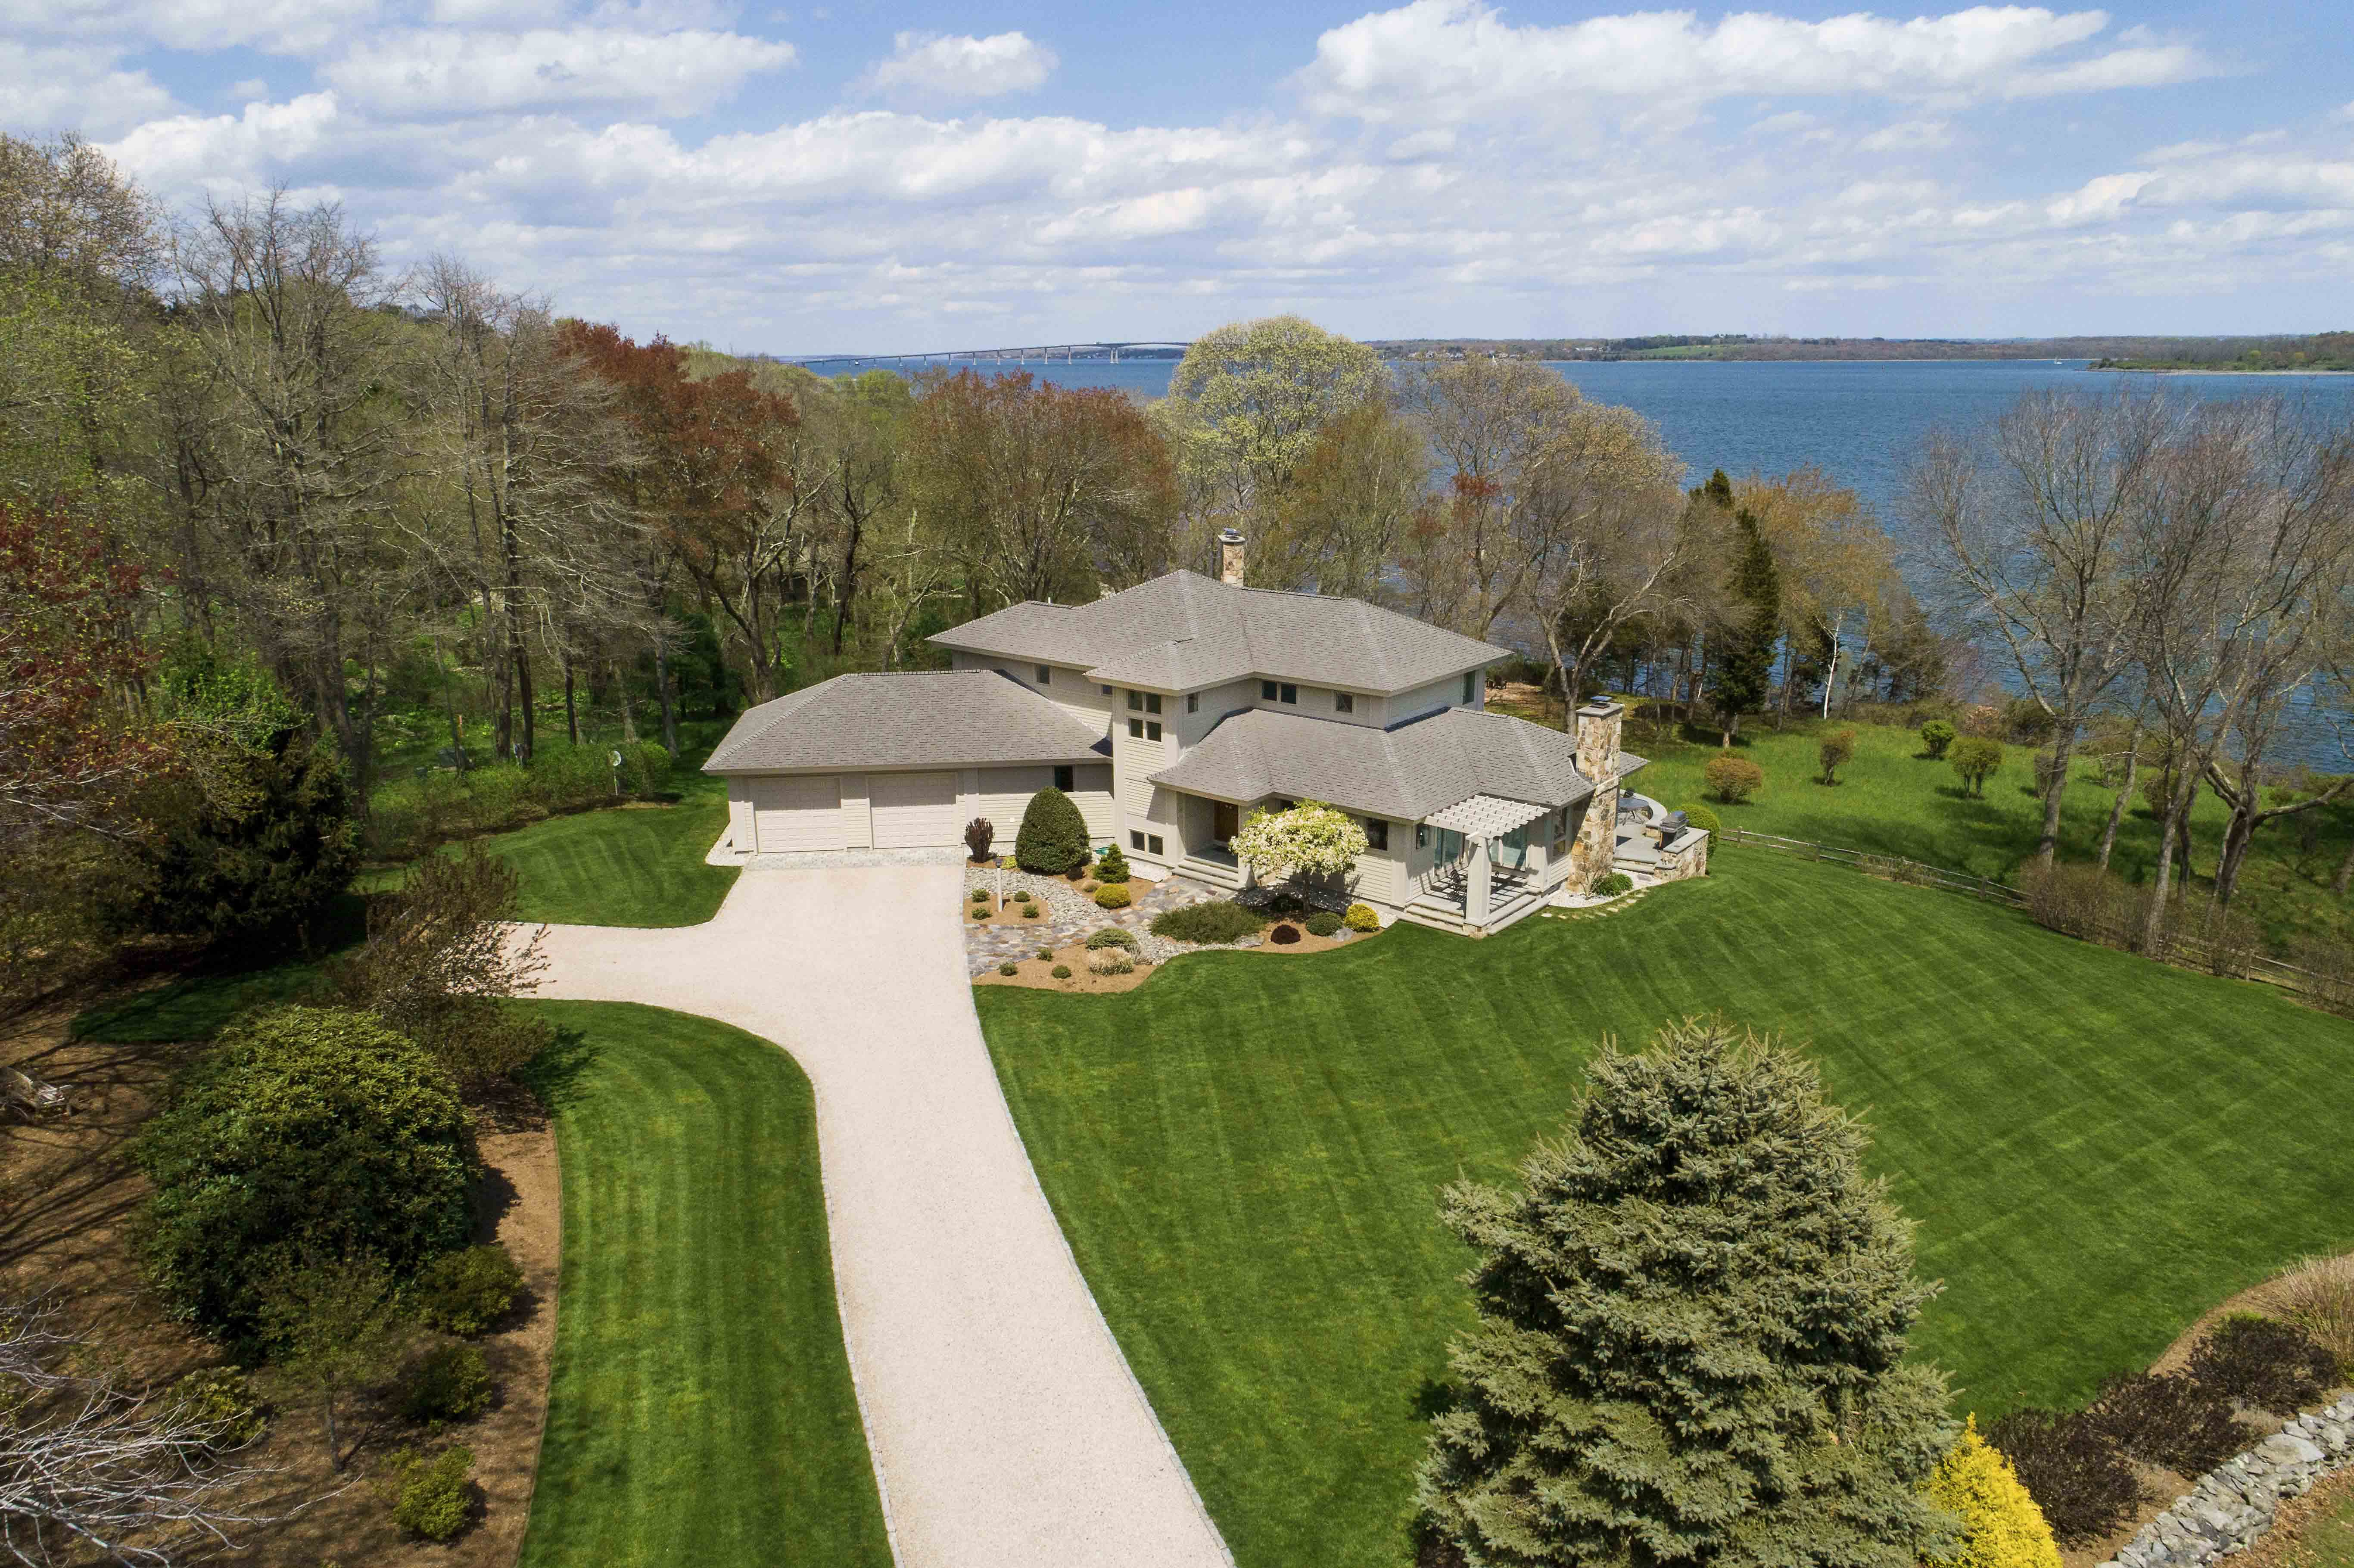 NARRAGANSETT CONTEMPORARY SELLS FOR $2.5M, MARKING THE 2ND HIGHEST SALE IN NARRAGANSET YEAR-TO-DATE*